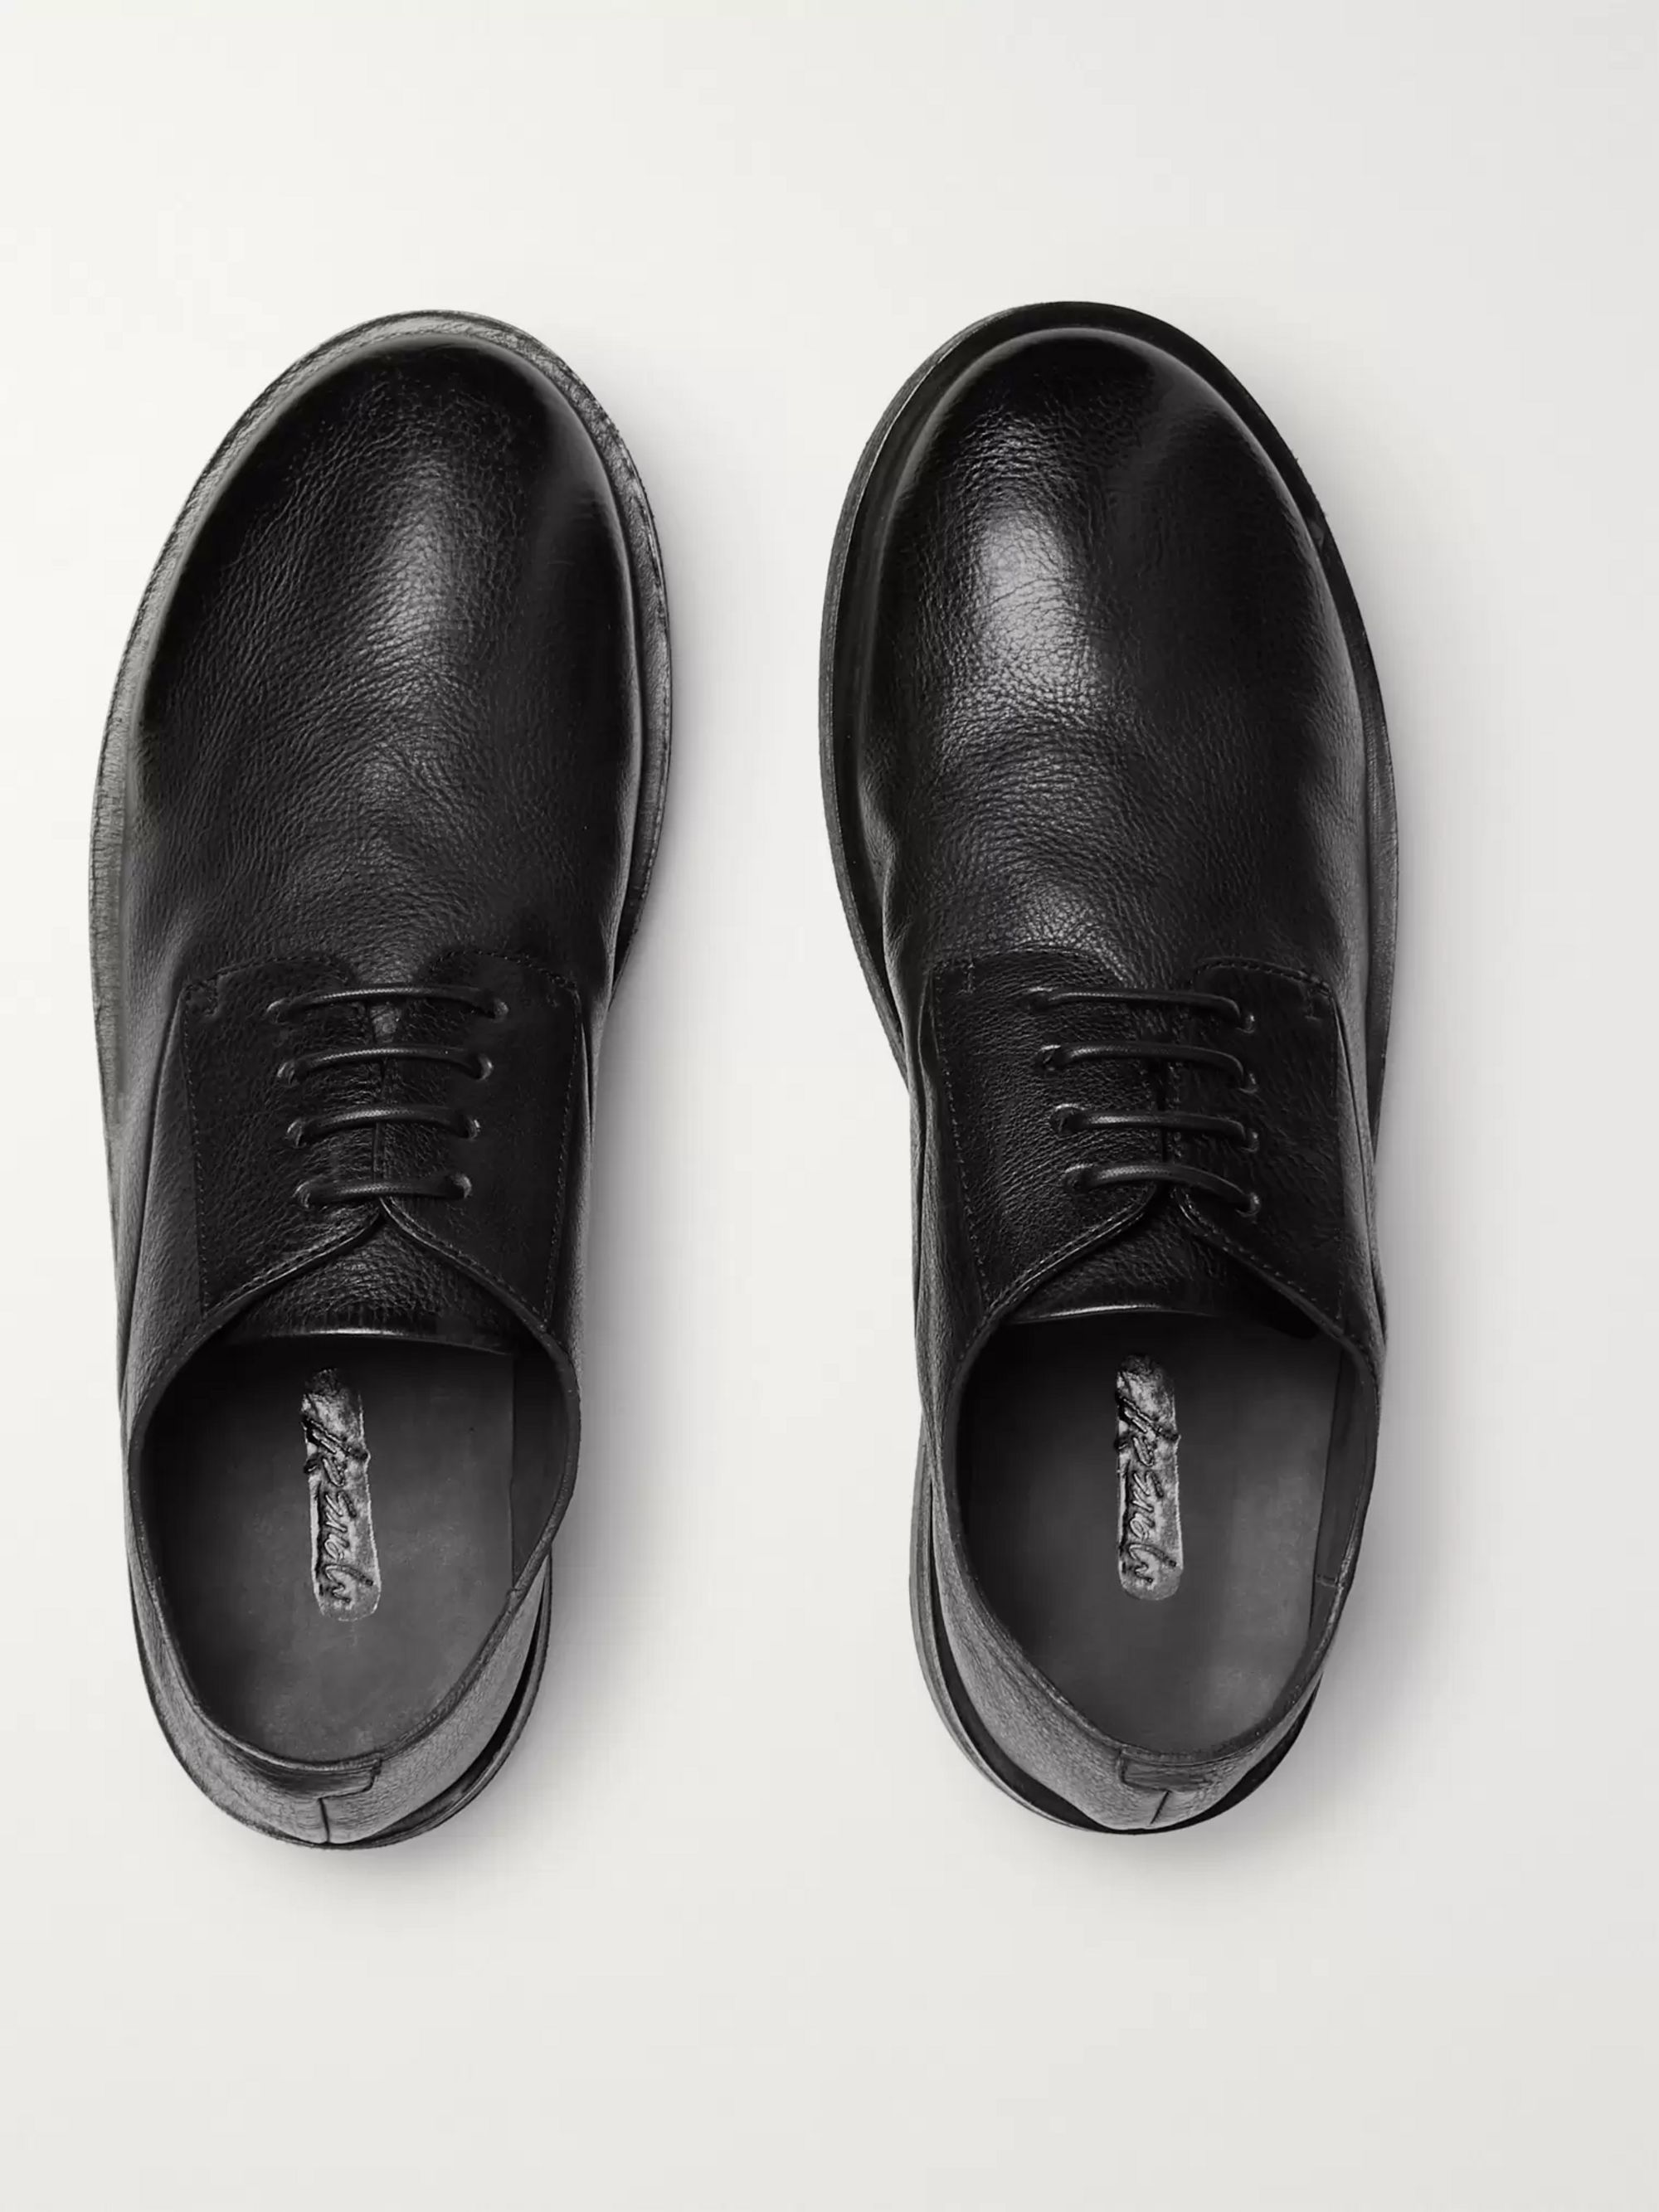 Marsell Full-Grain Leather Derby Shoes